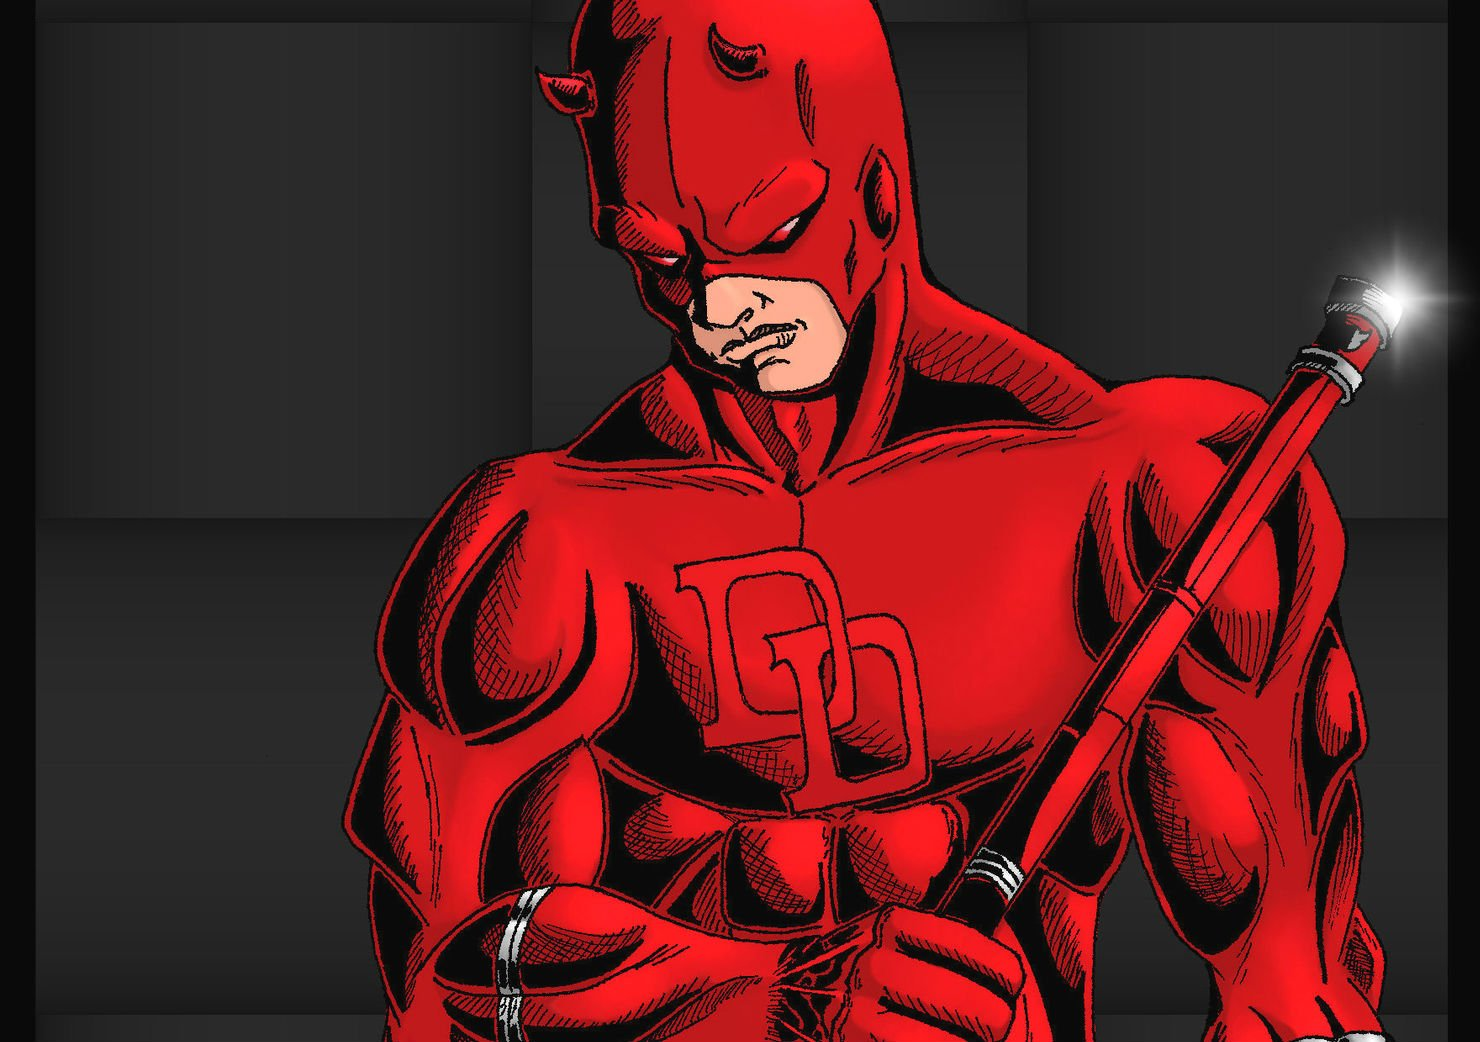 DAREDEVIL marvel superhero gs wallpaper 1480x1042 138232 1480x1042